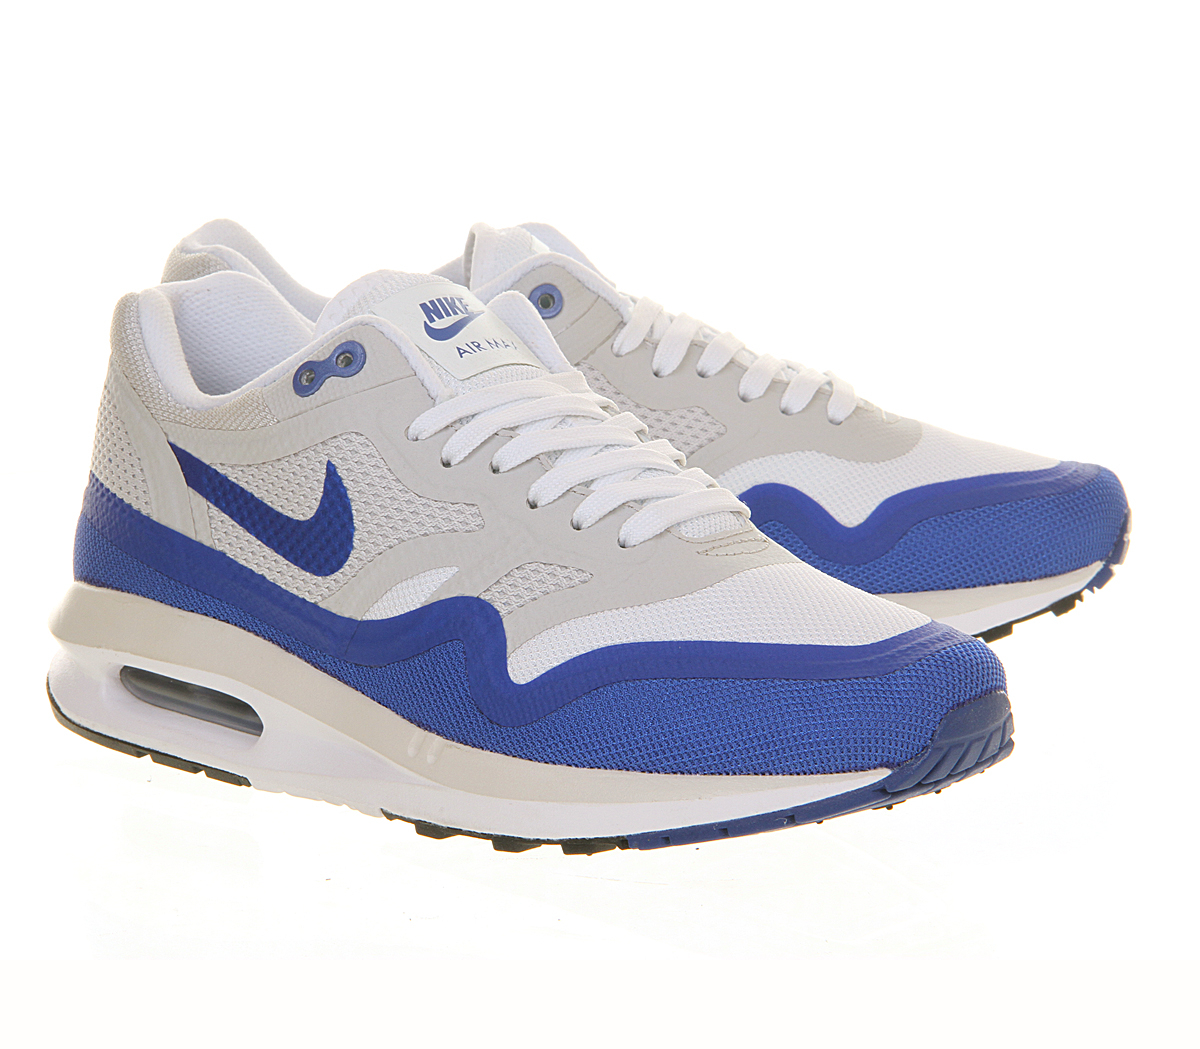 nike air max lunar 1 w in blue white lyst. Black Bedroom Furniture Sets. Home Design Ideas